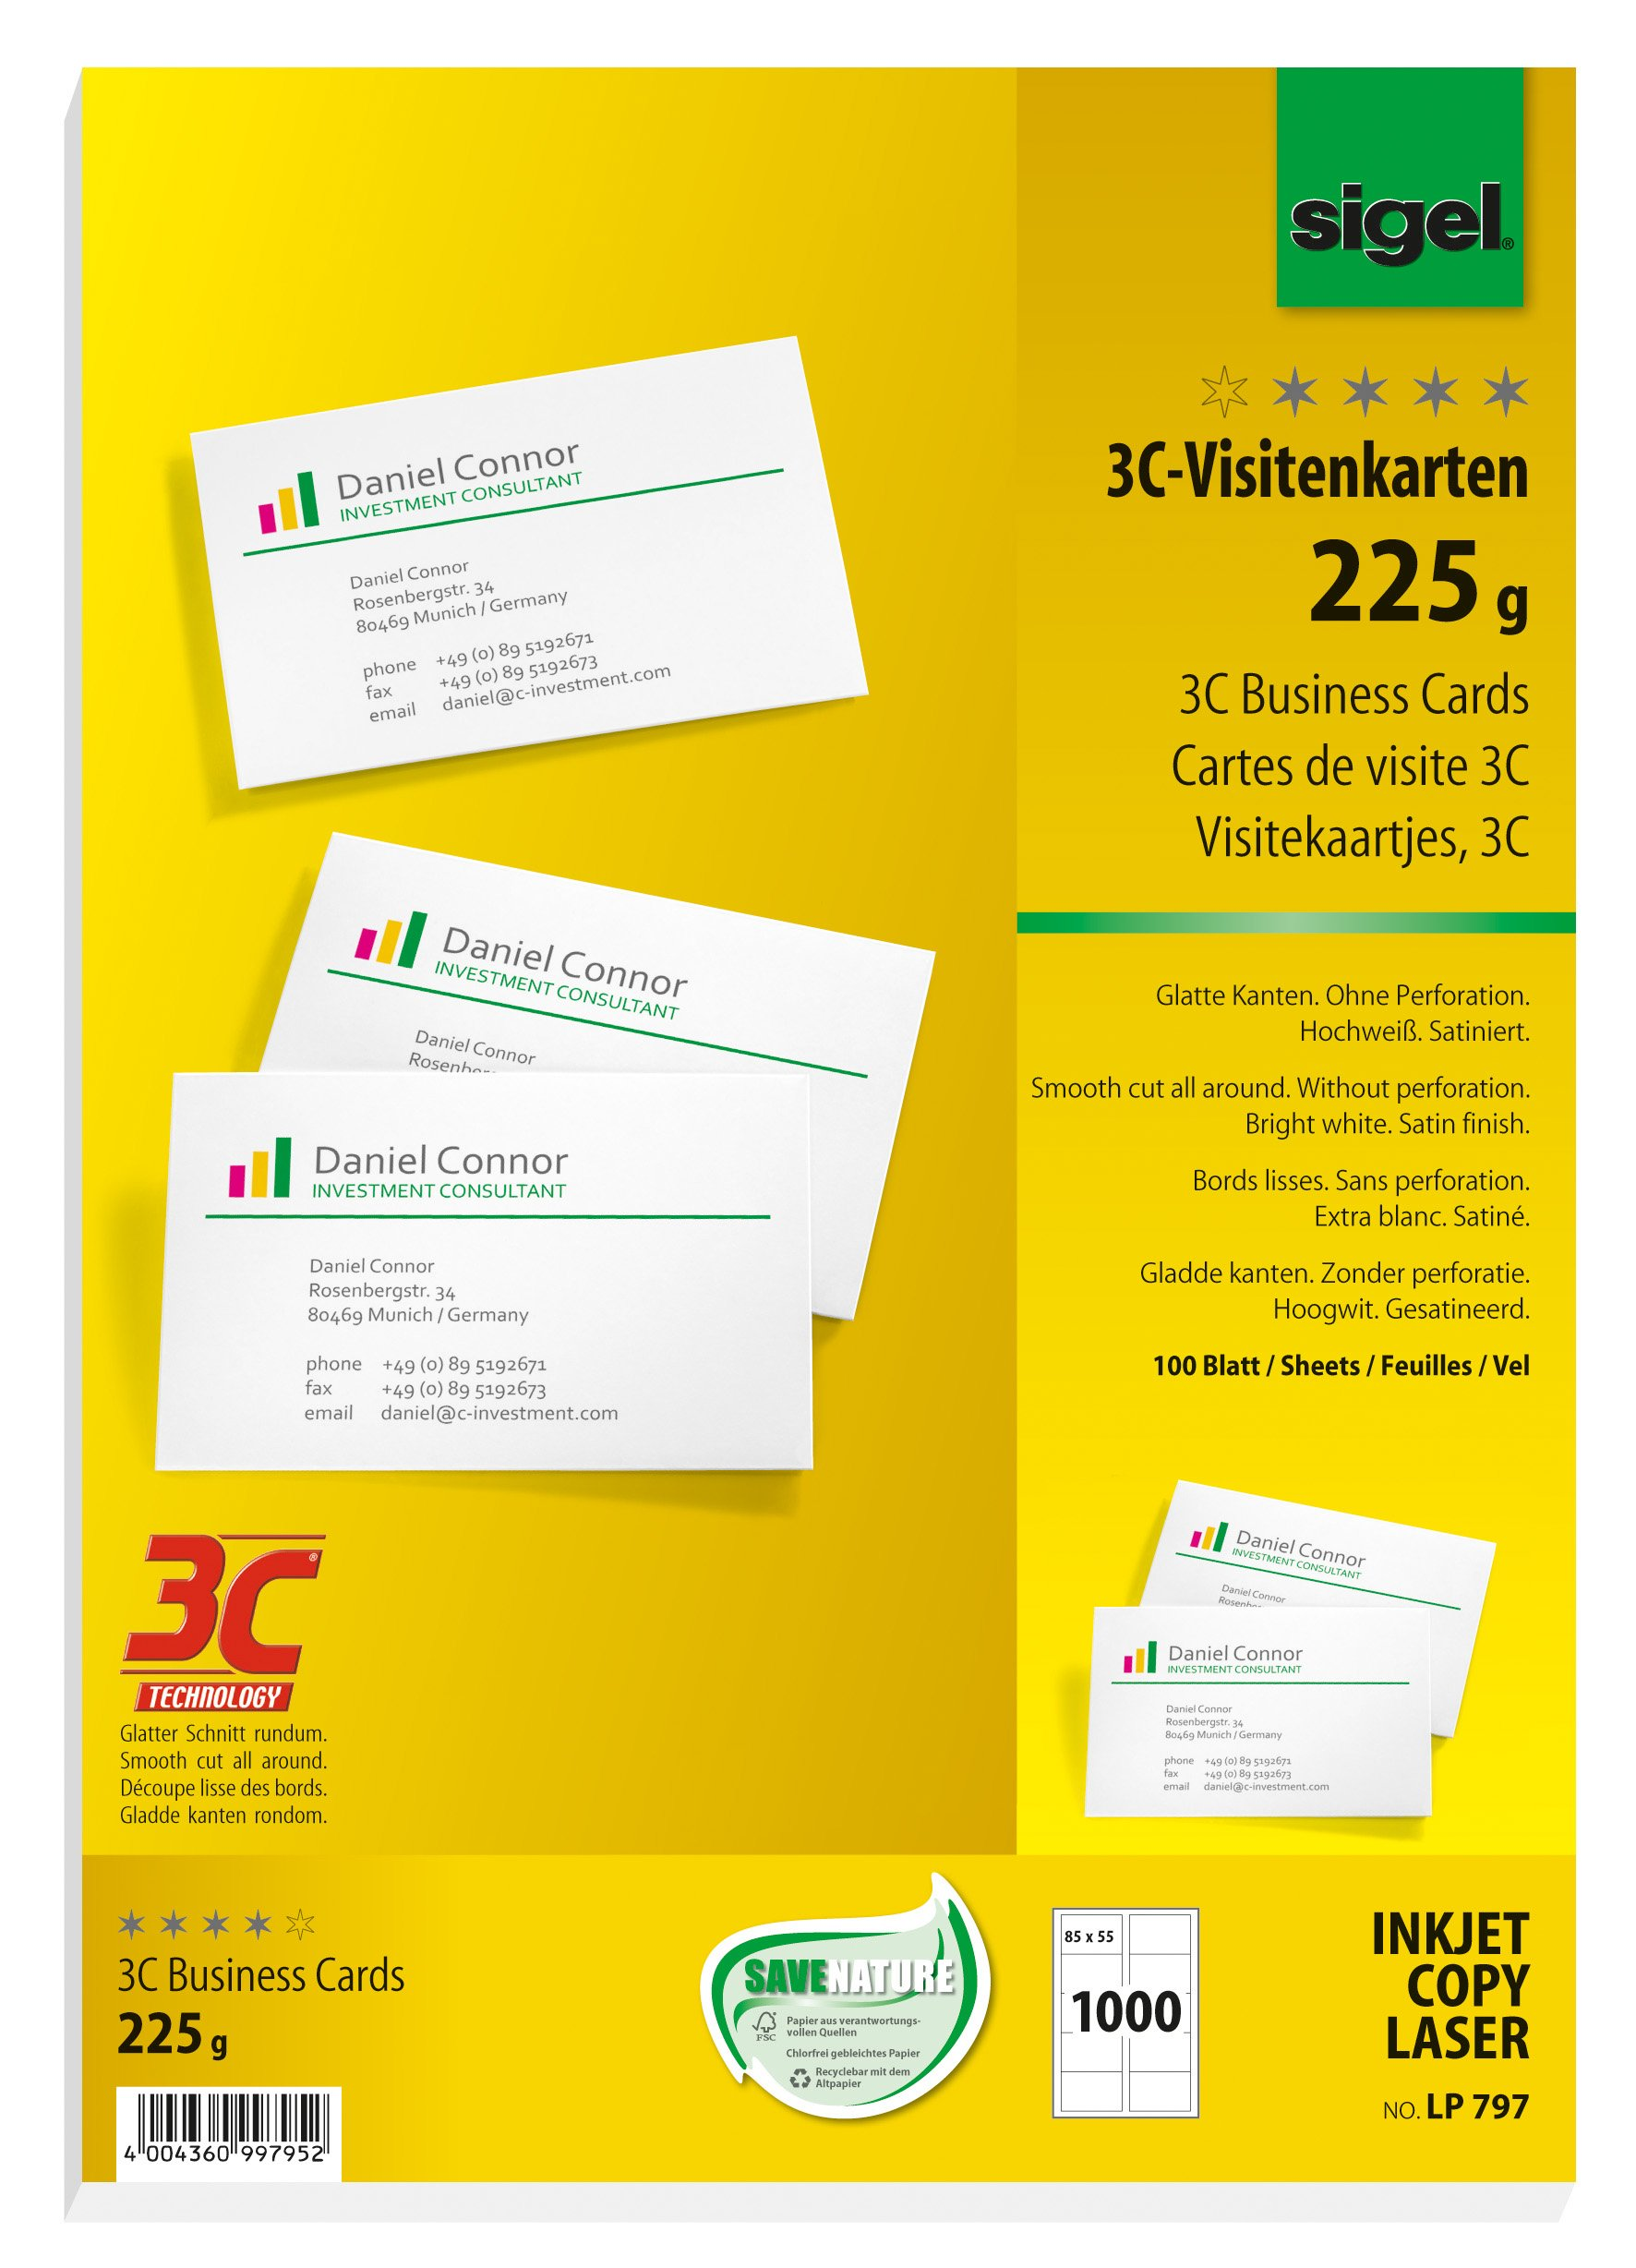 Sigel LP797 Business Cards, 3C, smooth cut all around, 152.0 lbs, bright white, 1000 pcs.